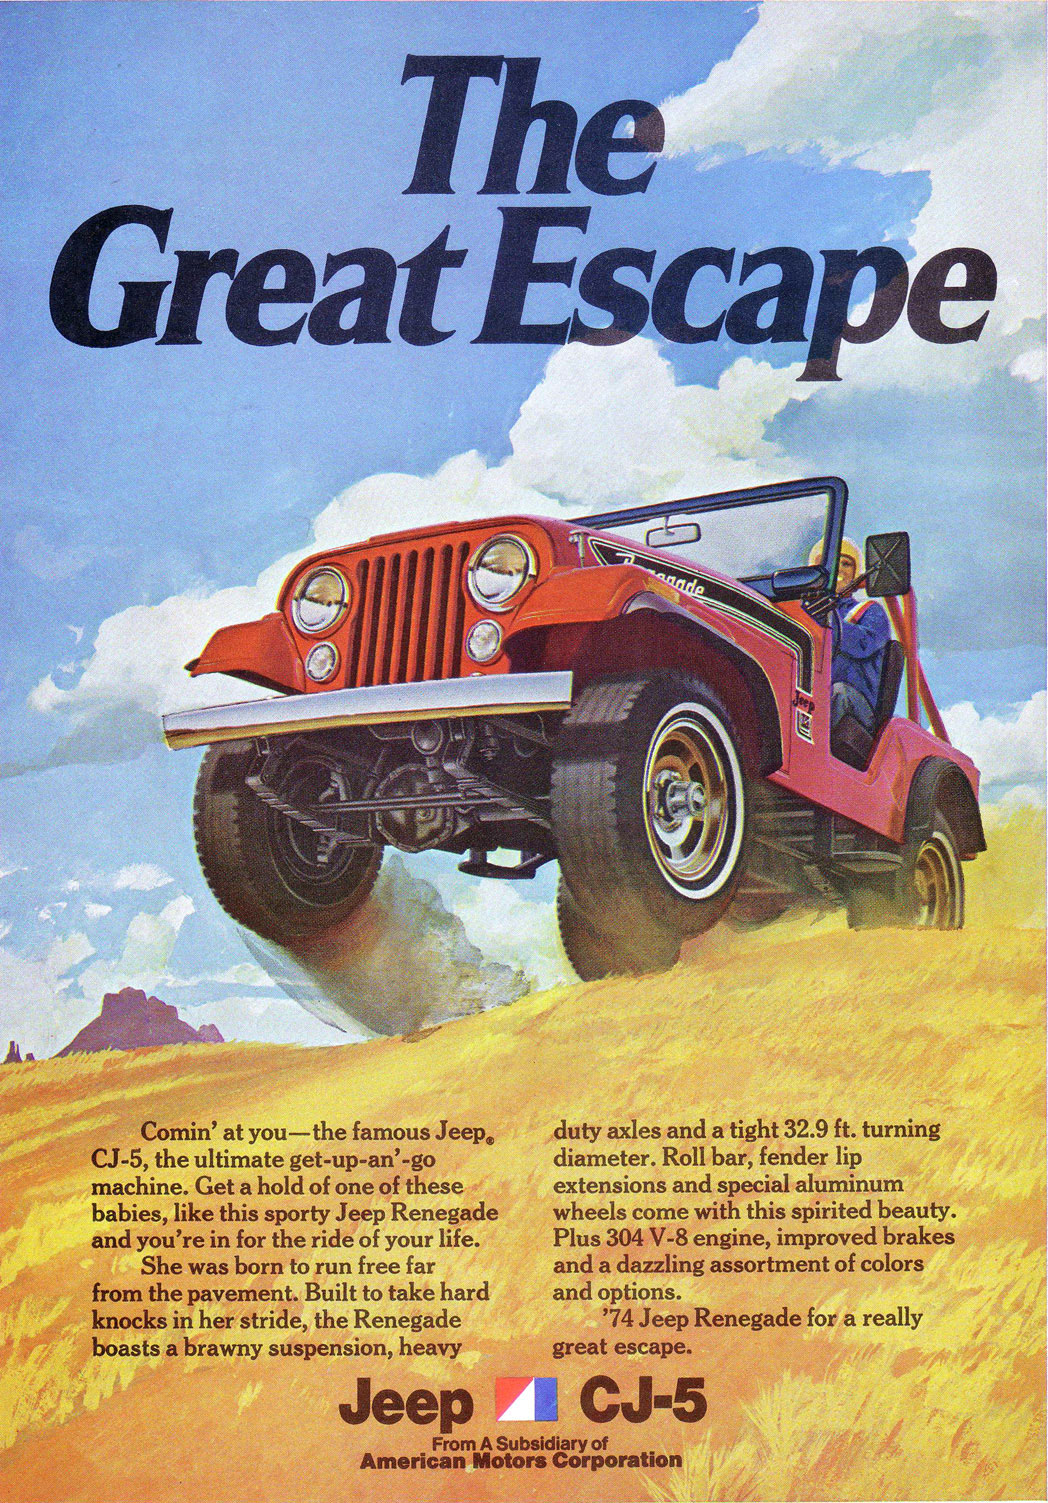 The Jeep CJ-5. The Great Escape. Comin' at you—the famous Jeep® CJ-5, the ultimate get-up-an'-go machine. Get a hold of one of these babies, like this sporty Jeep Renegade and you're in for the ride of your life. She was born to run free far from the pavement. Built to take hard knocks in her stride, the Renegade boasts a brawny suspension, heavy  duty axles and a tight 32.9 ft. turning diameter. Roll bar, fender lip extensions and special aluminum wheels come with this spirited beauty. Plus 304 V-8 engine, improved brakes and a dazzling assortment of colors and options. '74 Jeep Renegade for a really great escape.  Jeep CJ-5  From A Subsidiary of American Motors Corporation